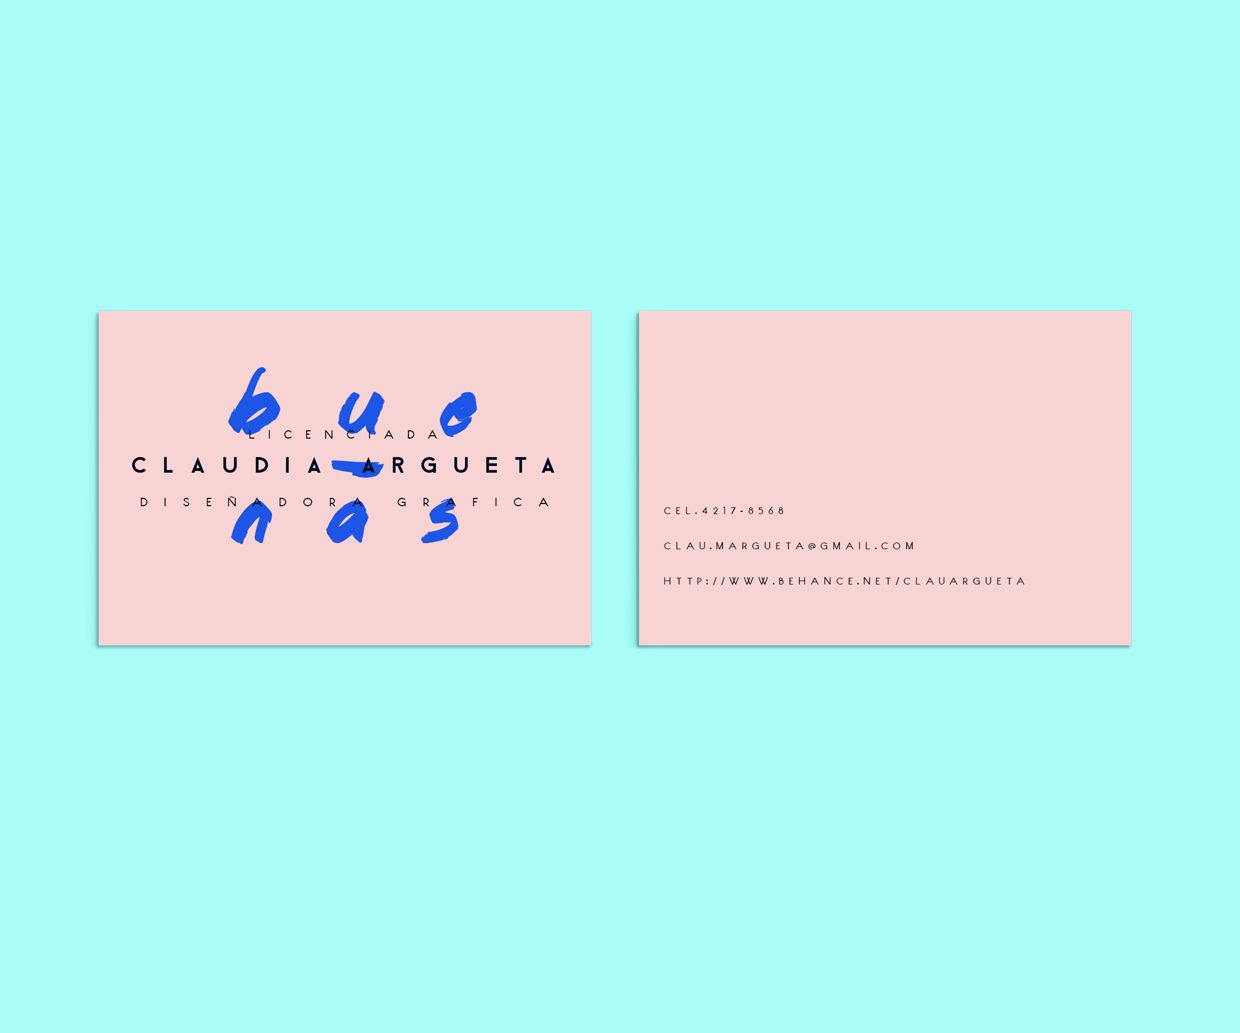 CURRICULUM VITAE CLAUDIA ARGUETA on Behance | Personal Logo ...